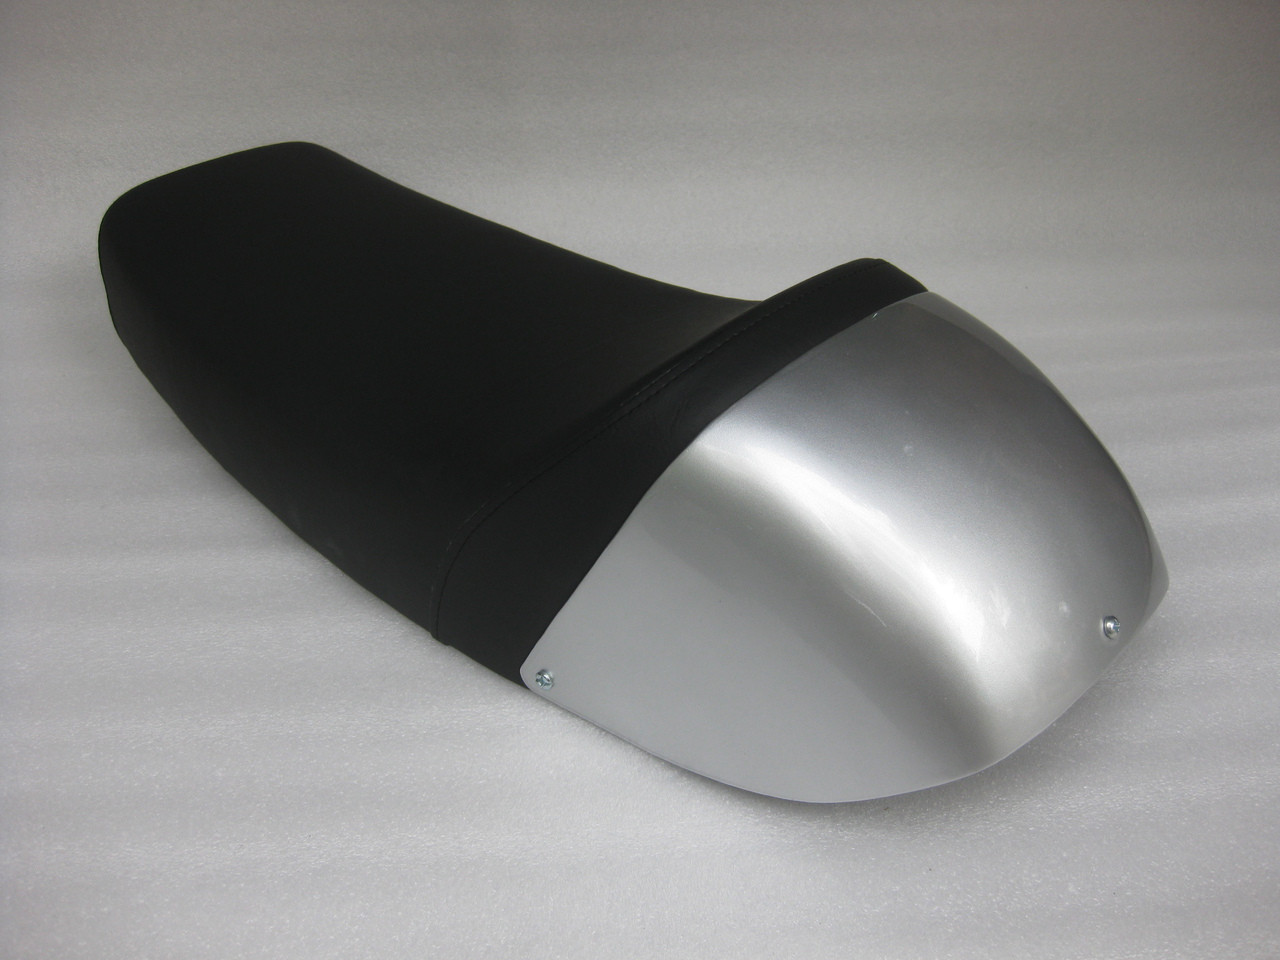 Honda CB400F CB400 cafe racer custom seat modify metal pan and metal cowl #4300